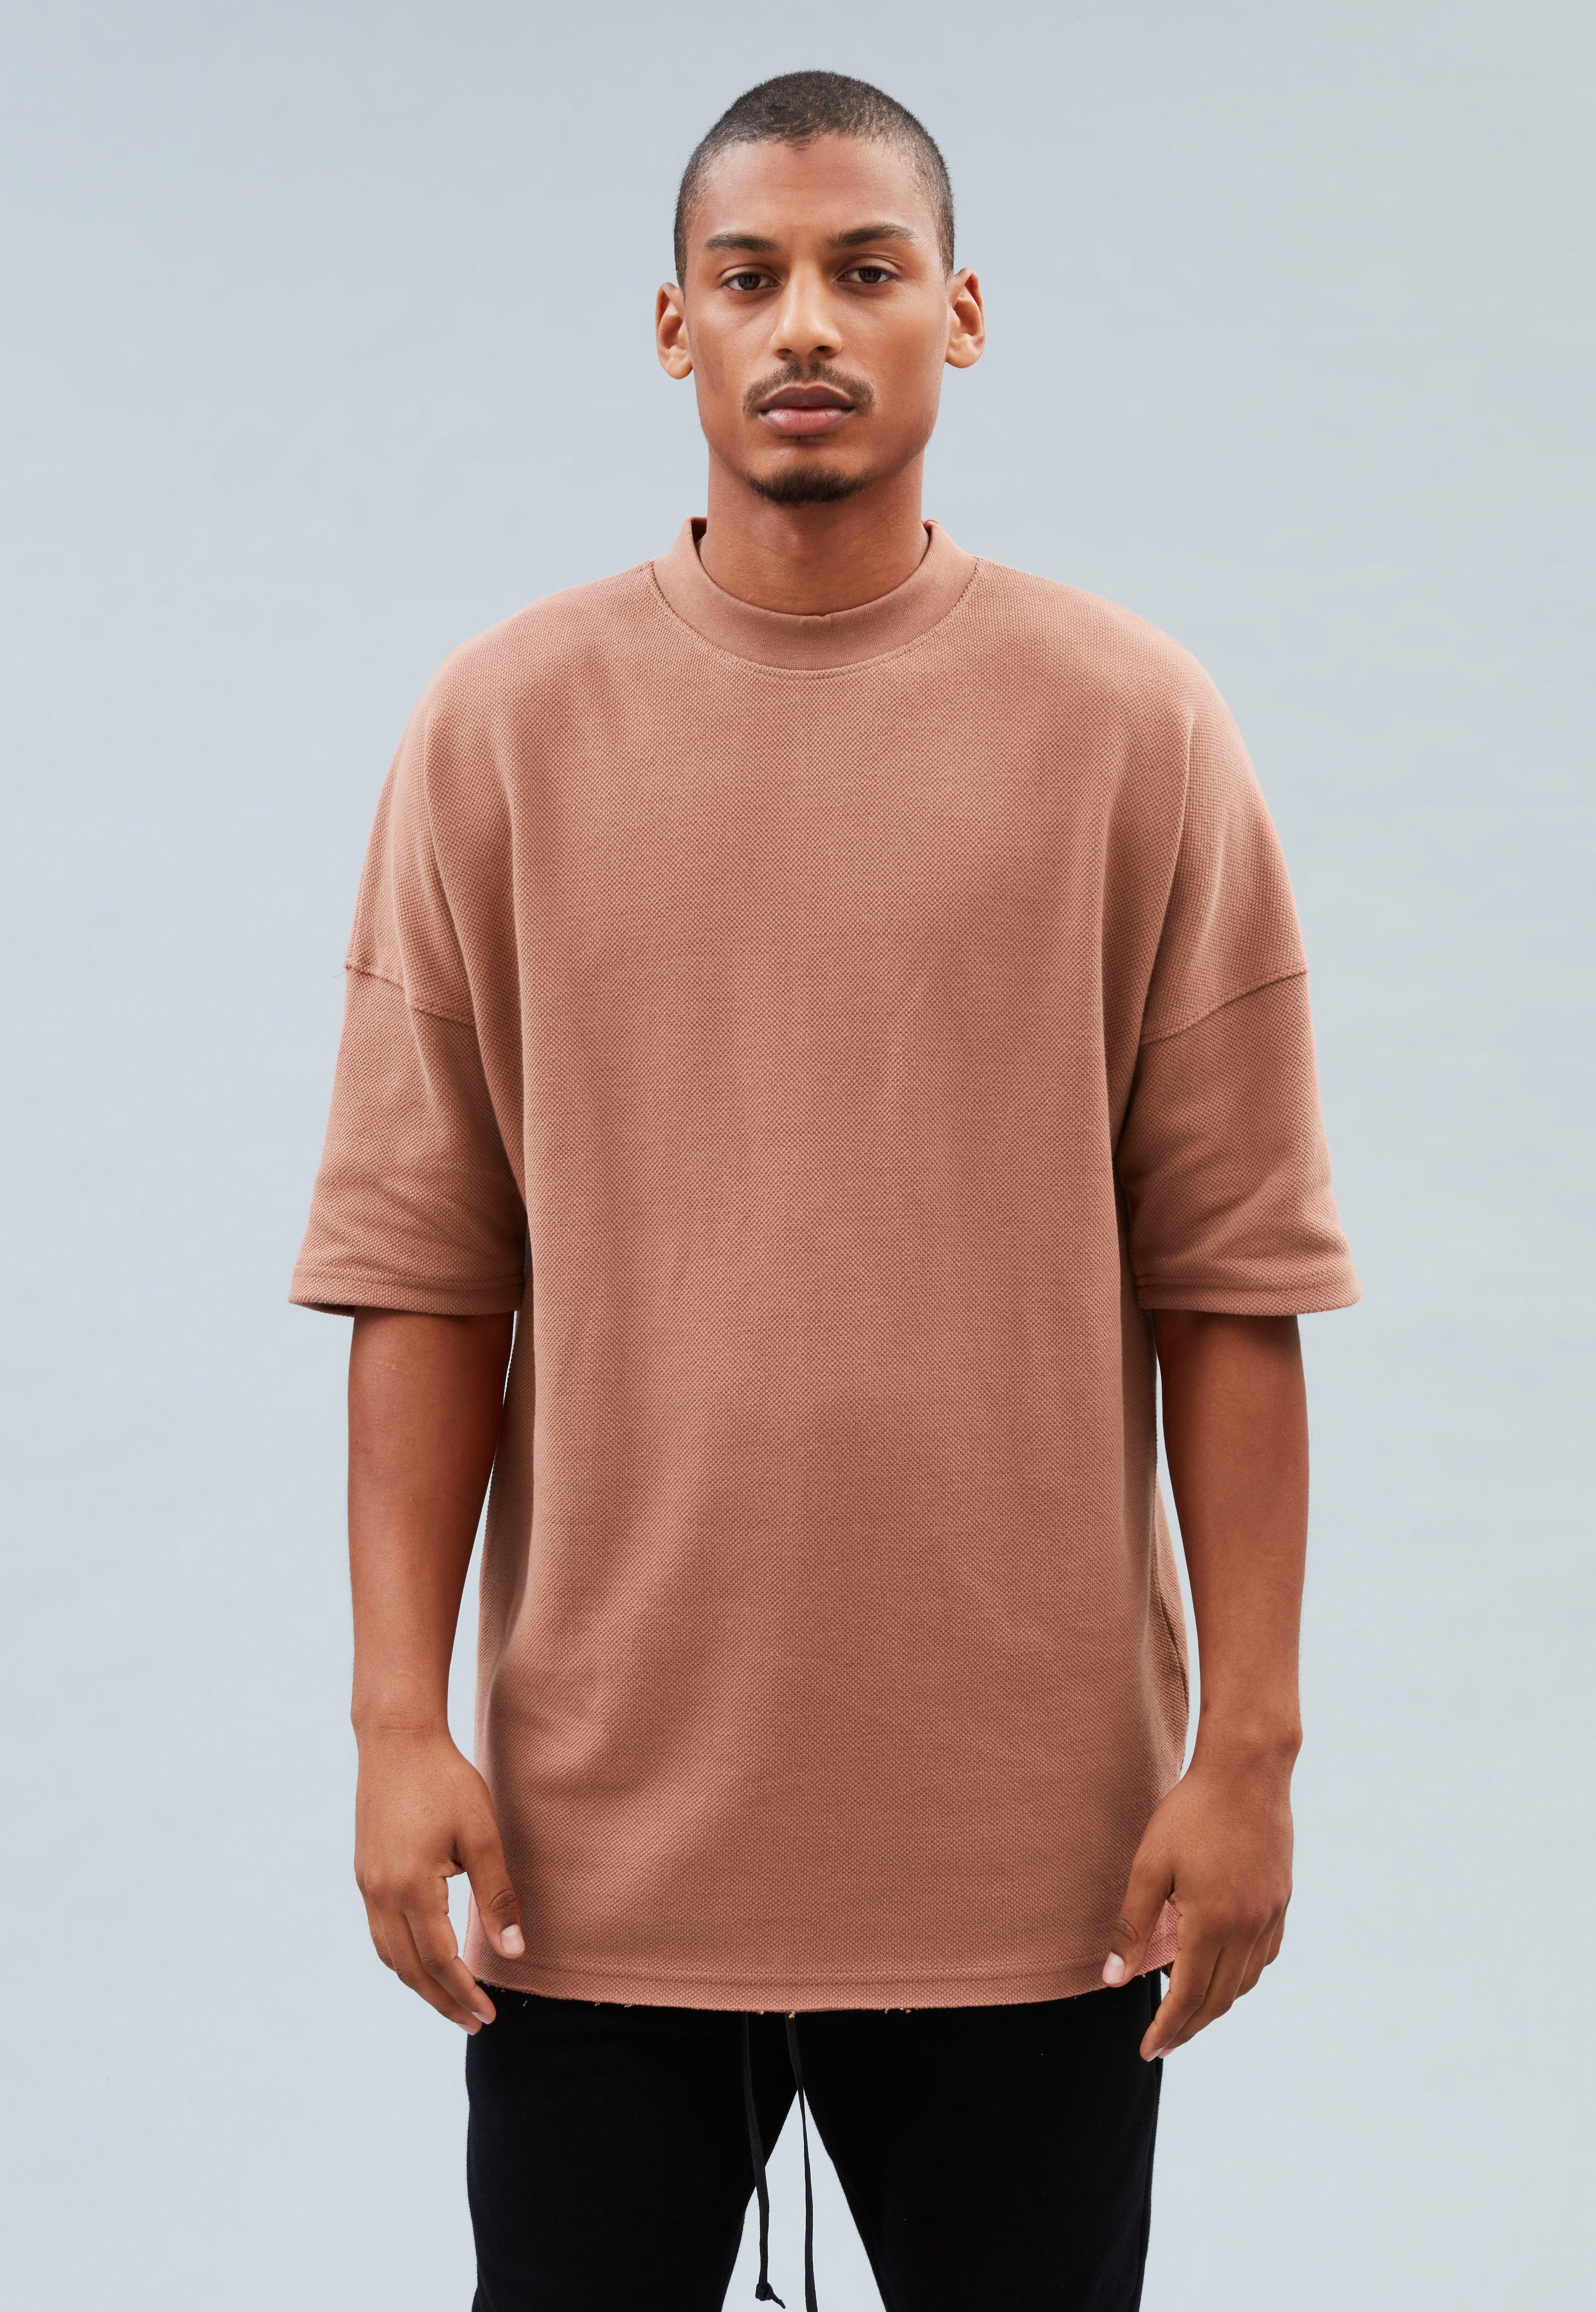 f070009669f6e Super Longline T Shirt With Oversized Fit And Stepped Hem - BCD Tofu ...